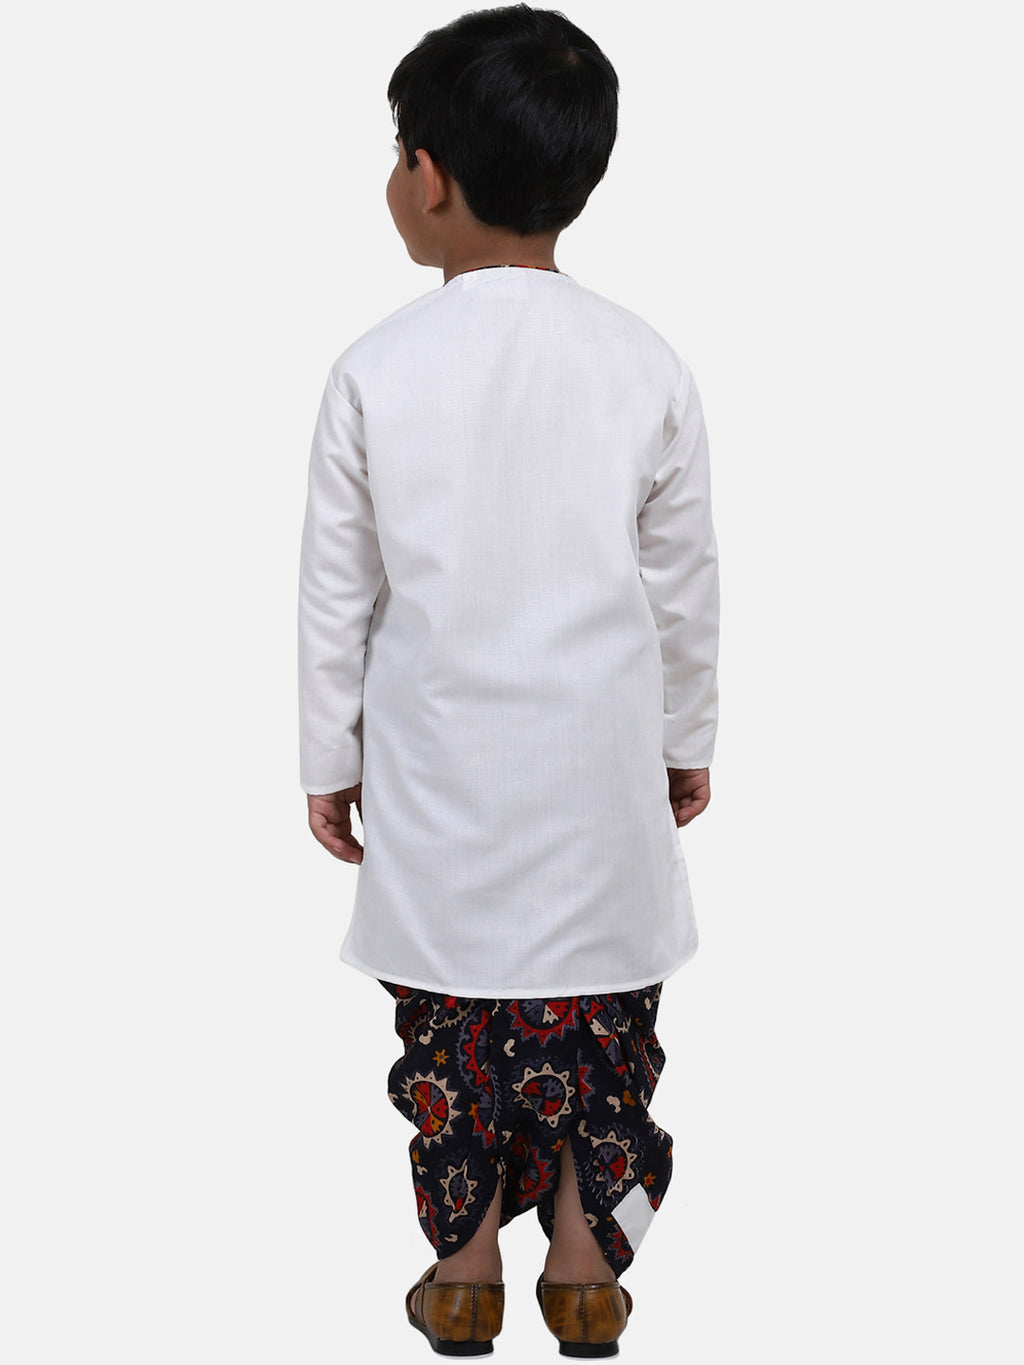 Full Sleeve Printed Dhoti Kurta For Boys-White